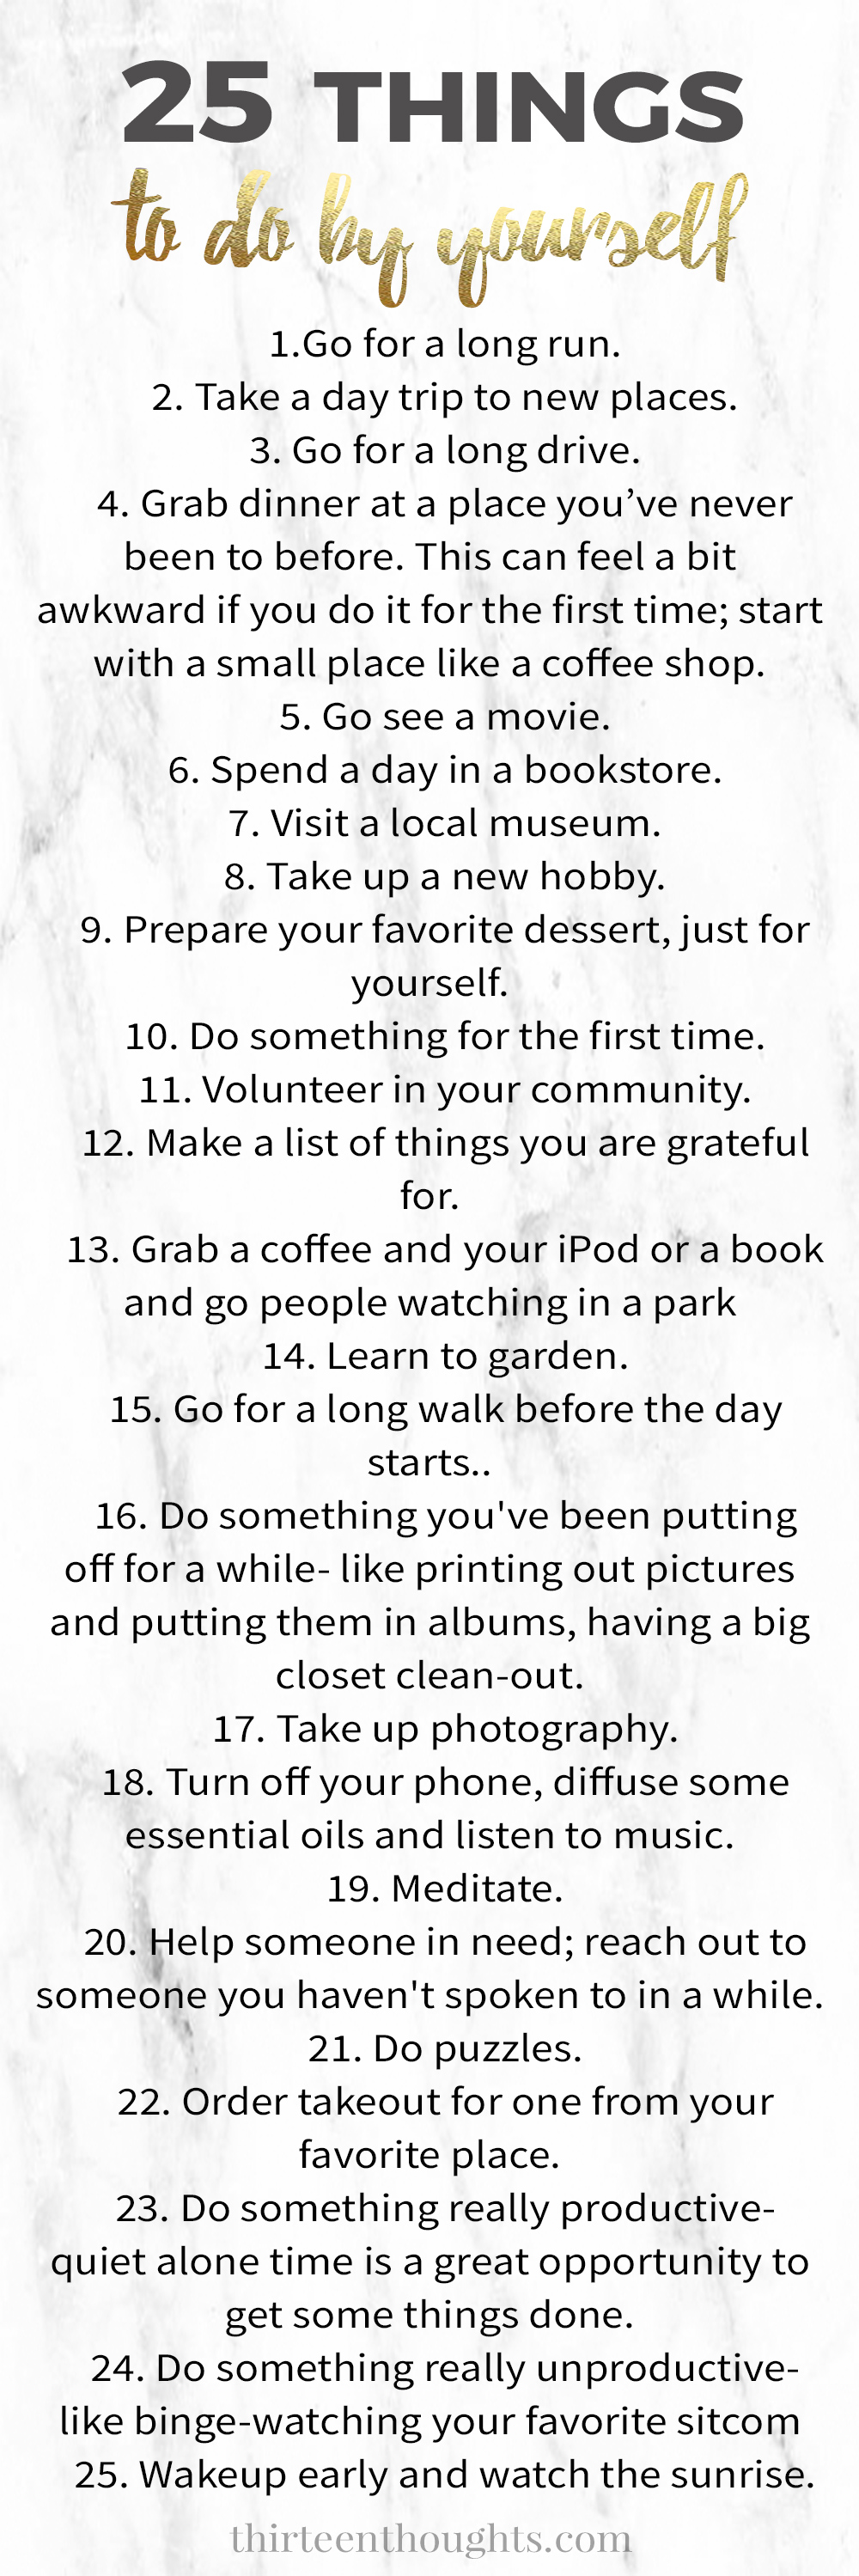 Things to do by yourself